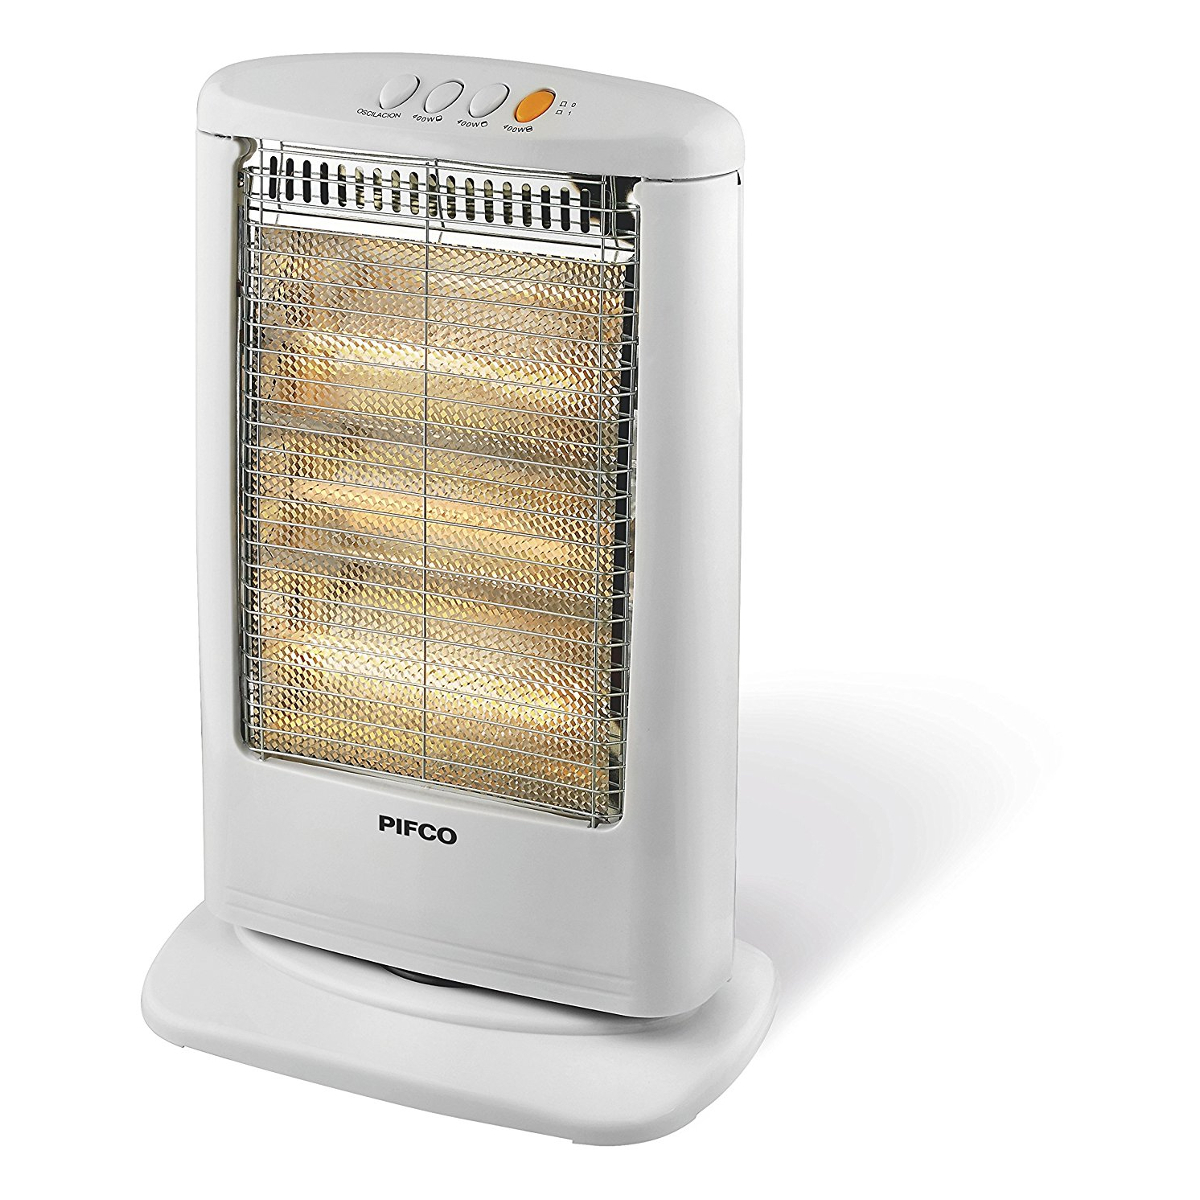 pifco p42001 halogen heater with 1200w power and 3 heat sett